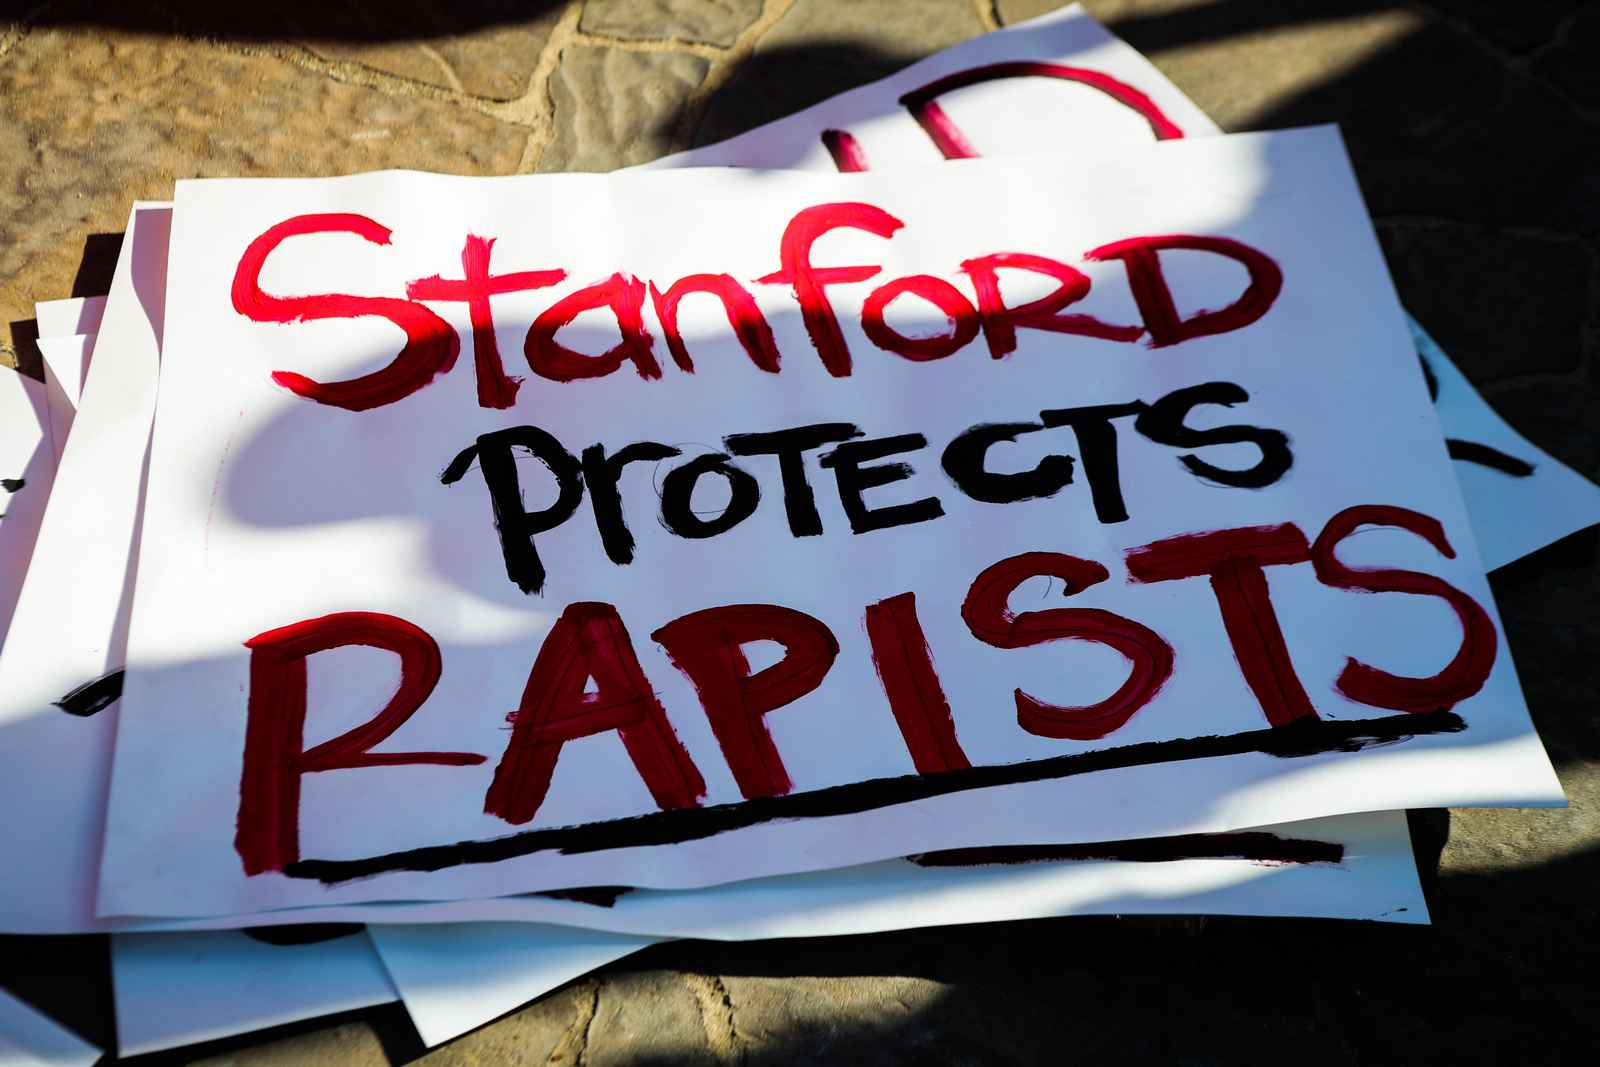 Signs against protectin rapist are seen during the commencement ceremony at Stanford University, in Palo Alto, California, on June 12, 2016. Stanford students are protesting the universitys handling of rape cases alledging that the campus keeps secret the names of students found to be responsible for sexual assault and misconduct. / AFP / GABRIELLE LURIE (Photo credit should read GABRIELLE LURIE/AFP/Getty Images)